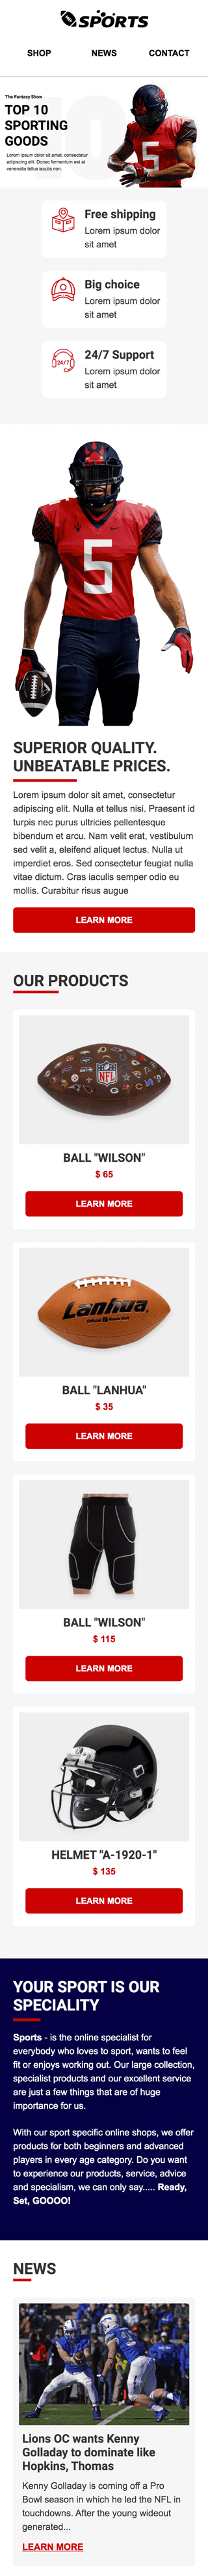 Super Bowl Email Template «Games Time» for Sports industry mobile view